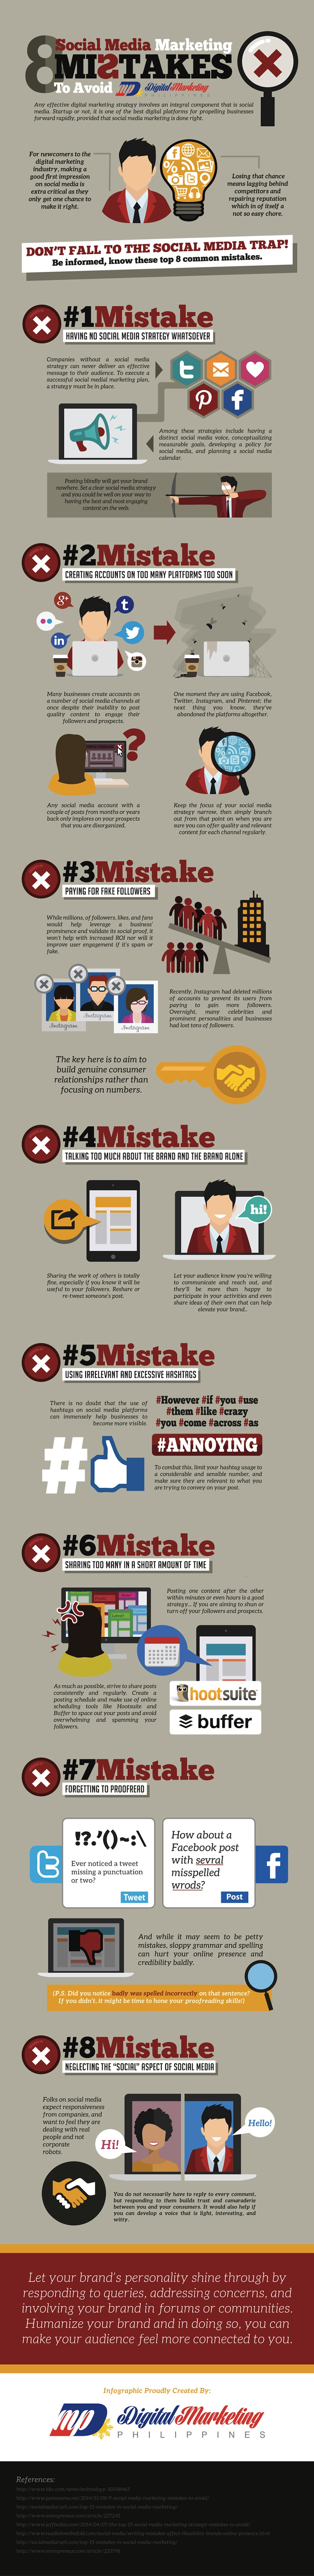 infographic 8 social media marketing mistakes